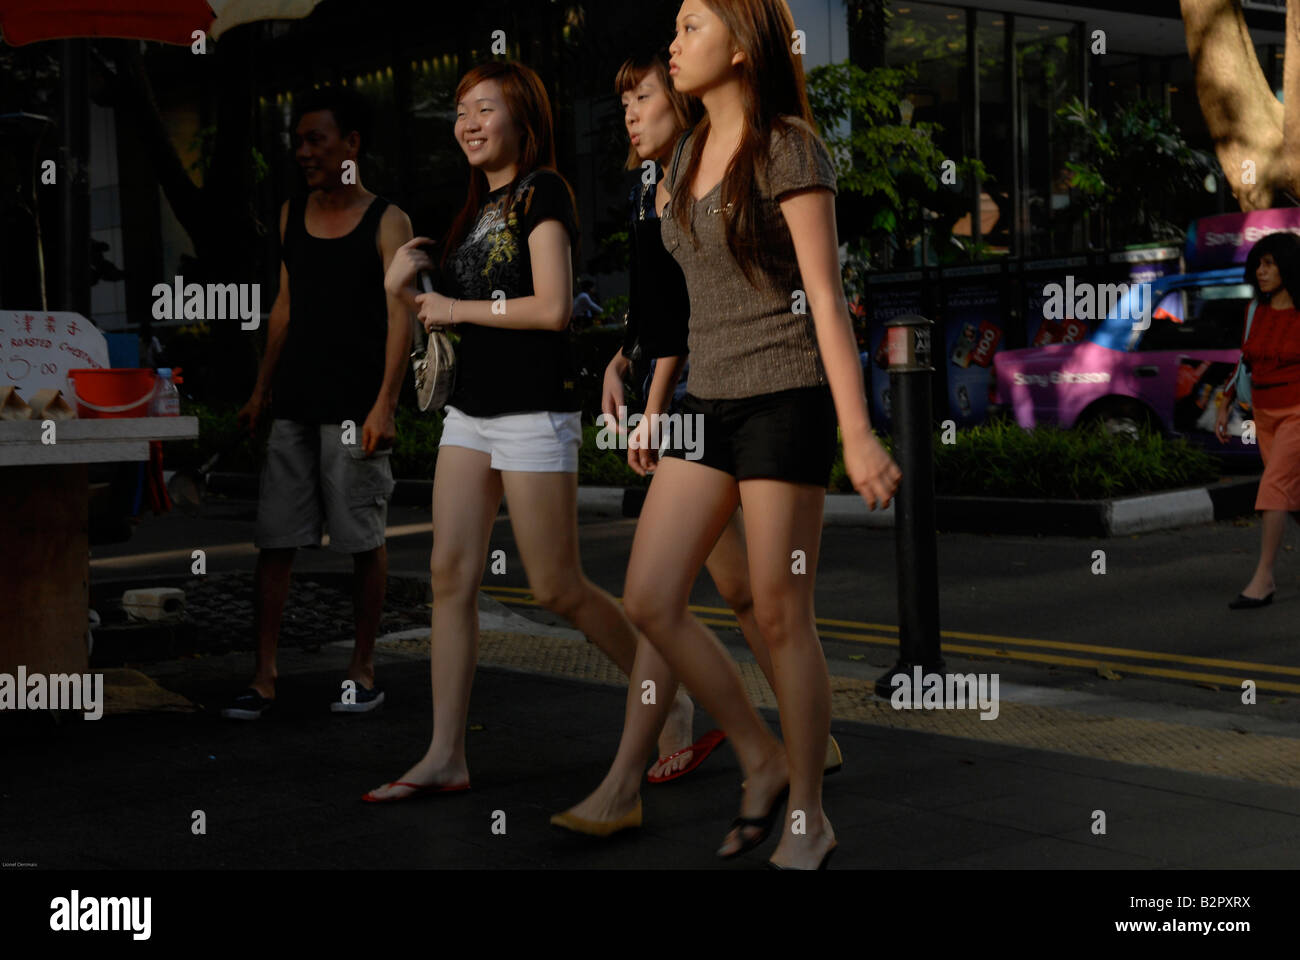 Orchard road girls